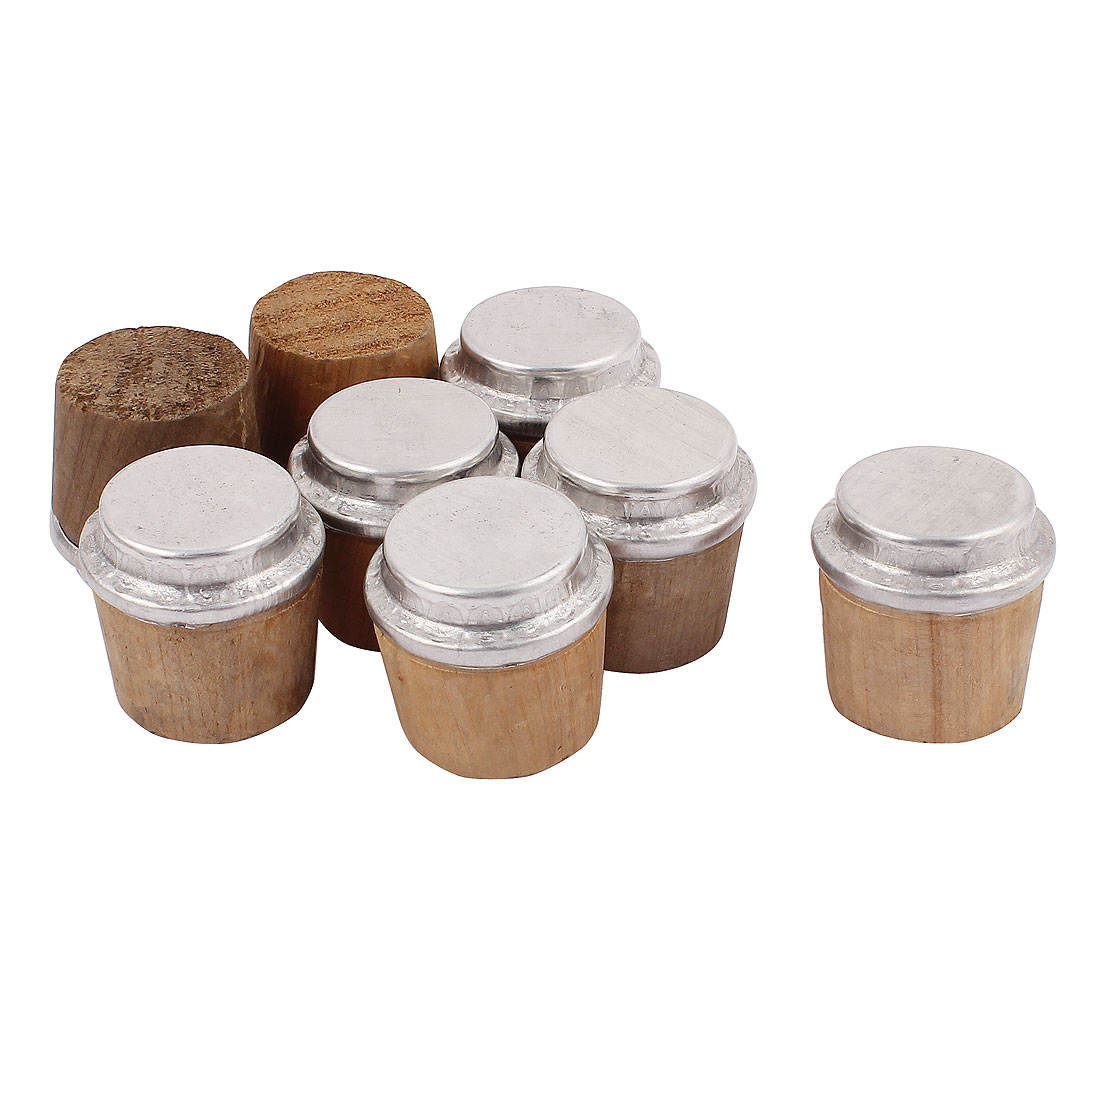 8 Pcs 34mm Bottom Dia Kitchenware Wooden Insulating Bottle Stoppers